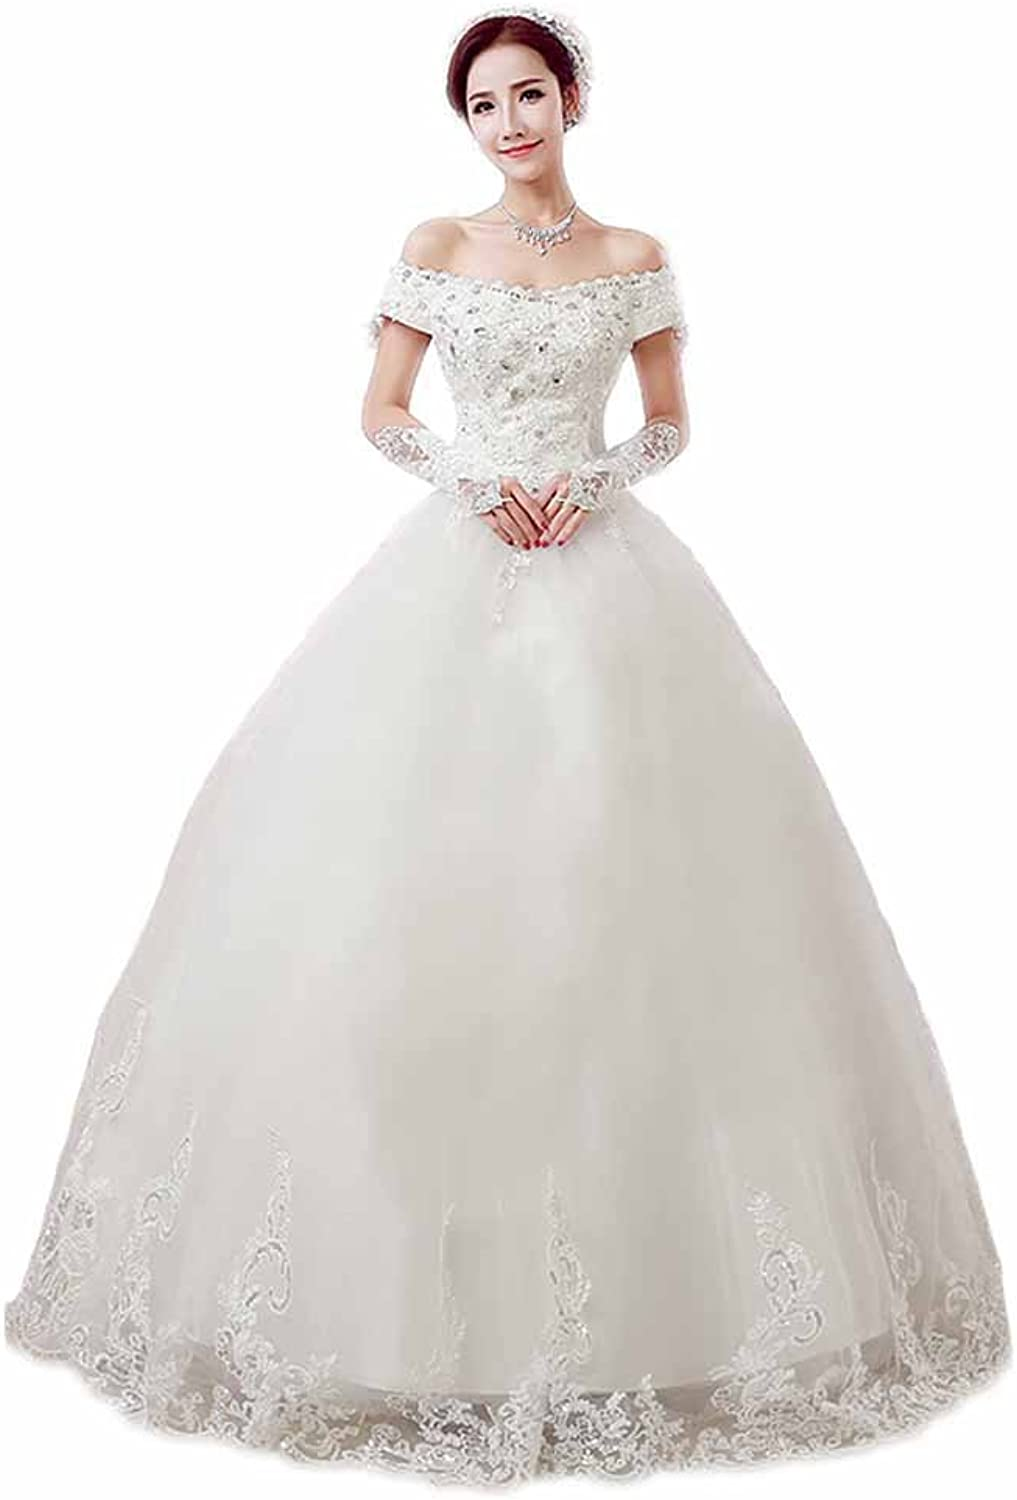 AK Beauty Women's Cap Sleeve Appliques Ball Gown Wedding Dress